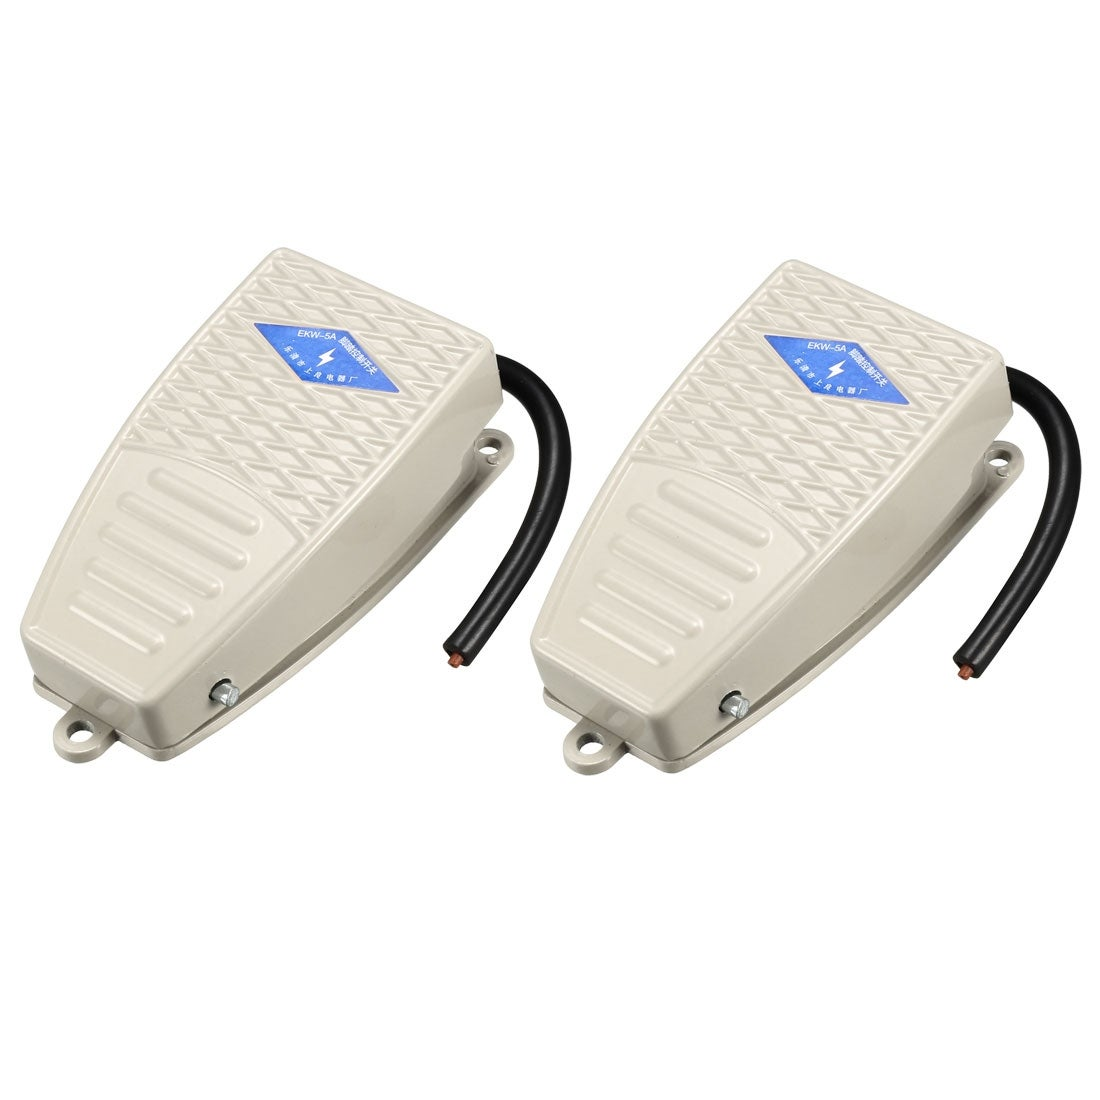 Electric Power Pedal Aluminum Momentary Switch Non-Slip SPDT NO NC 220V 5A 2PCS